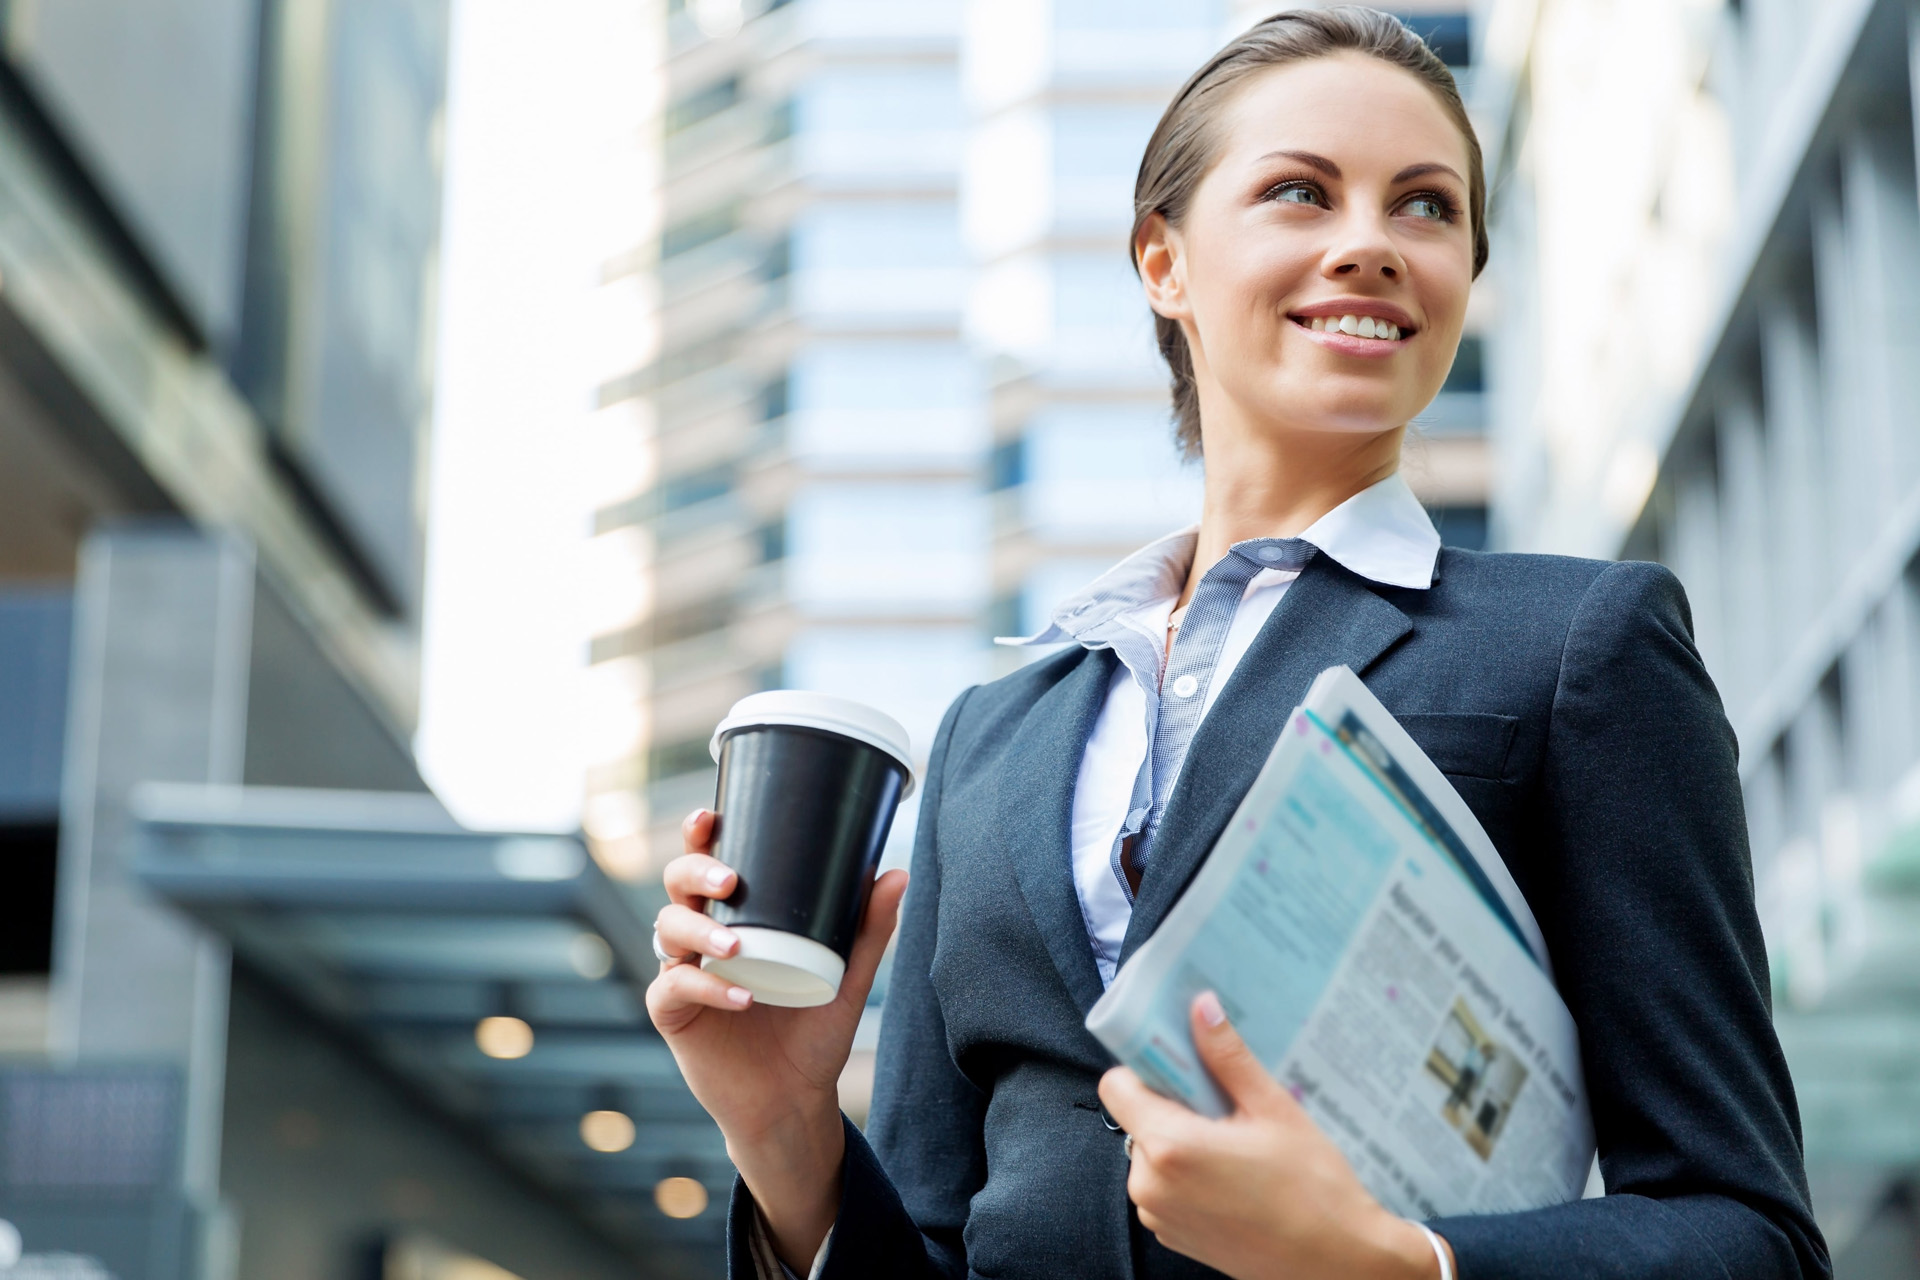 woman wearing a suit, smiling as she carries a coffee cup and a newspaper